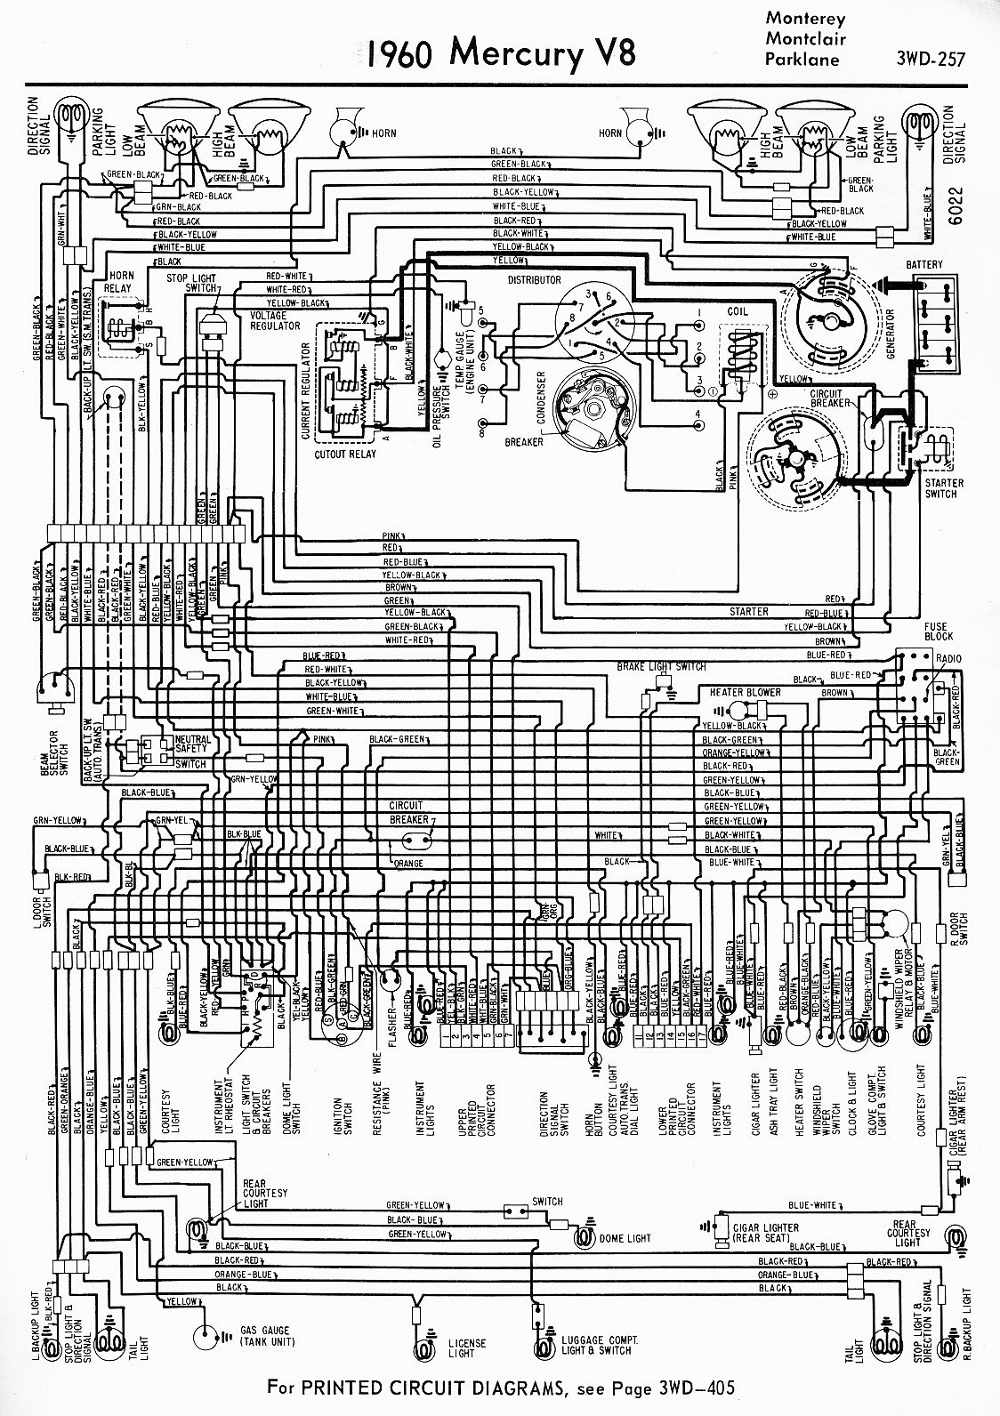 Surprising Ford 8n Wiring Diagram 6 Volt Ideas - Best Image ...